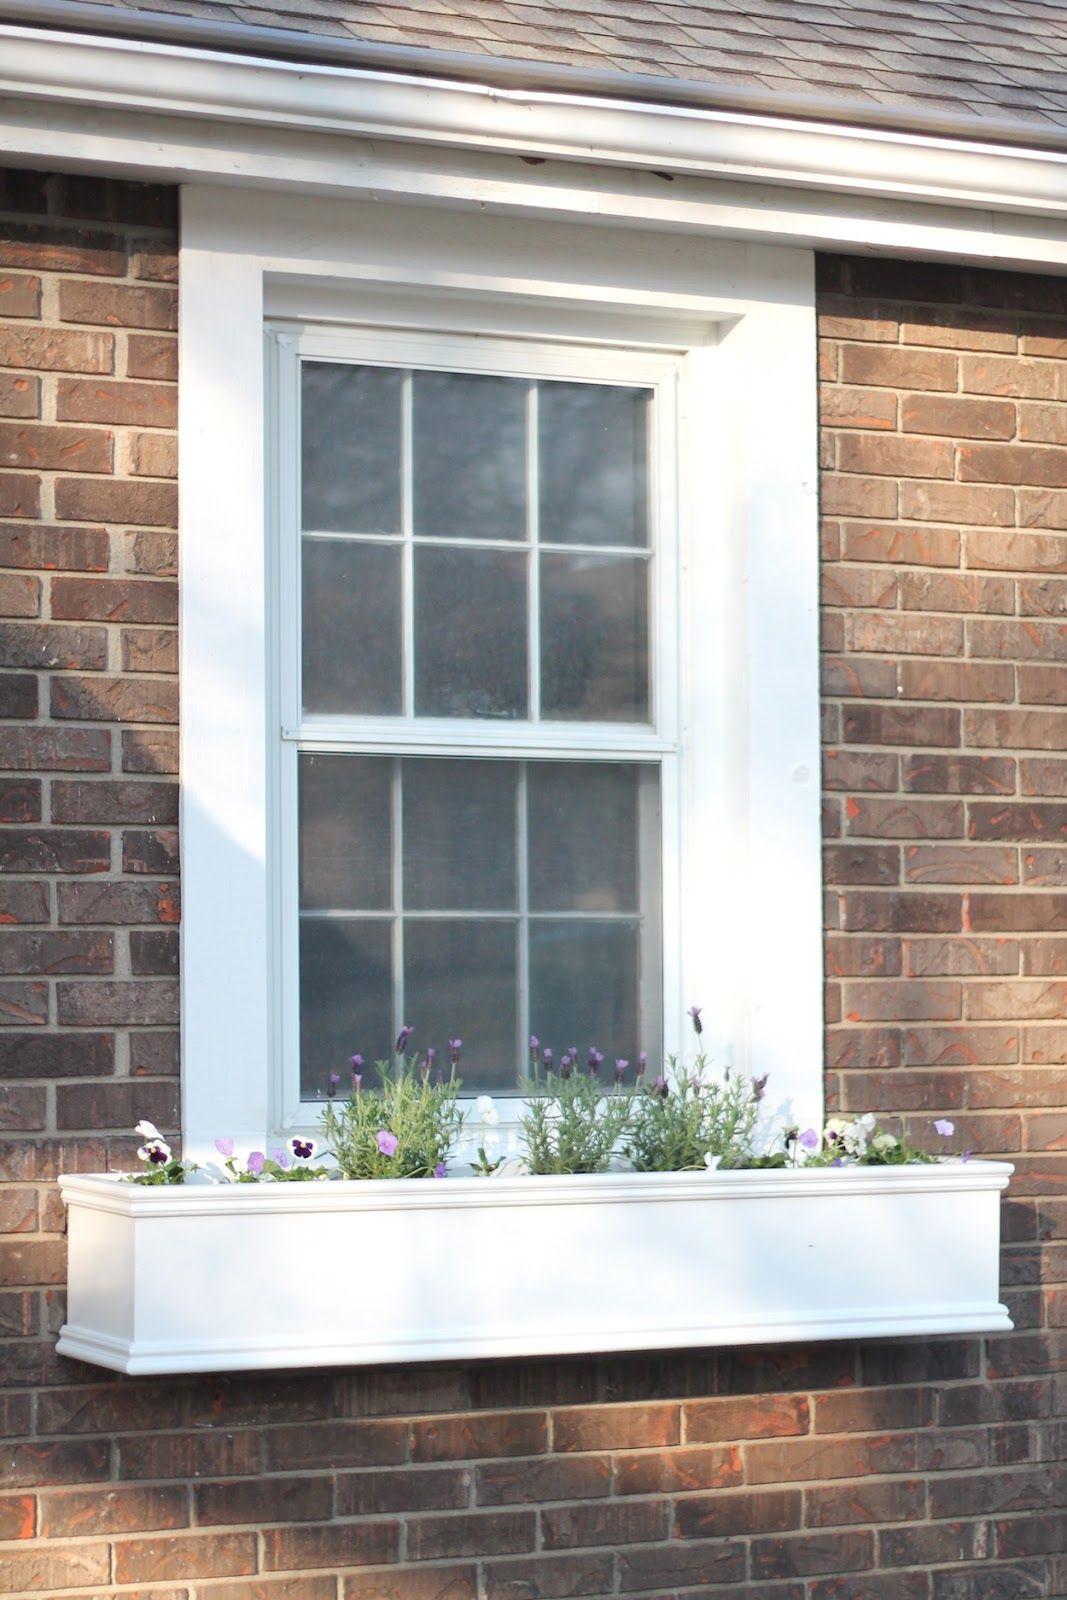 Diy Simple Window Planters What If You Covered With Copper